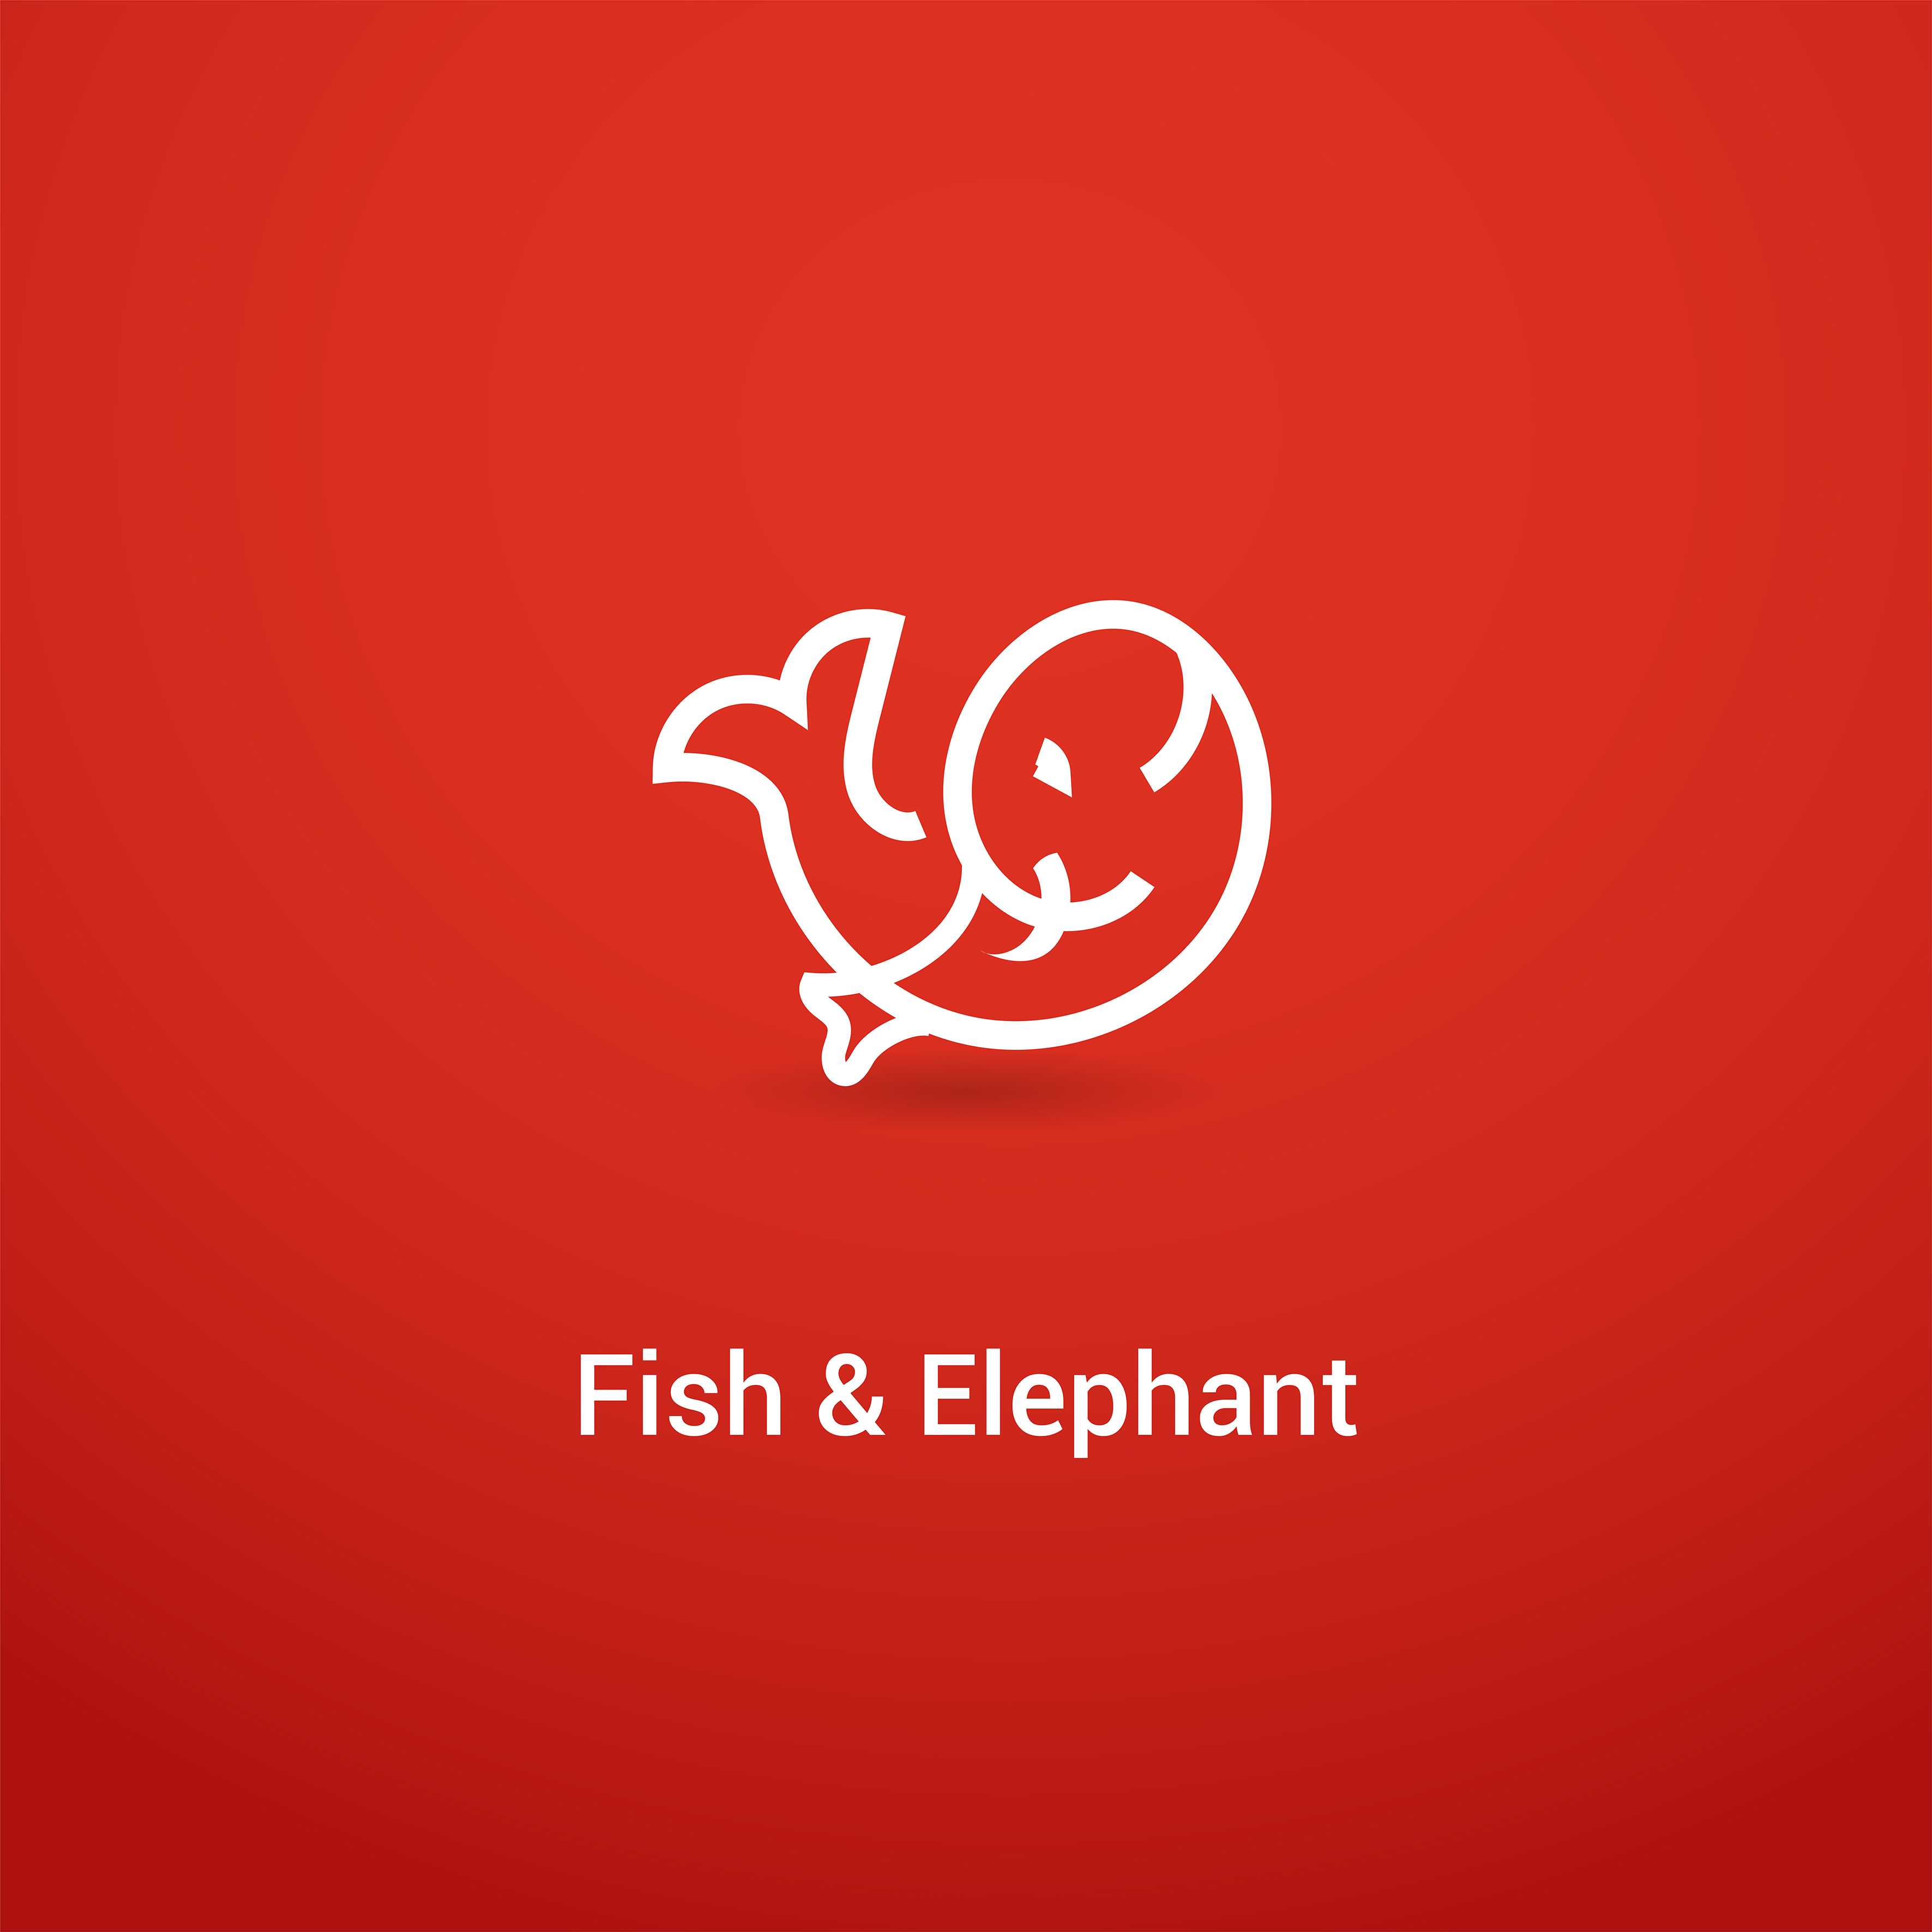 Logo combination of fish and elephan kecil